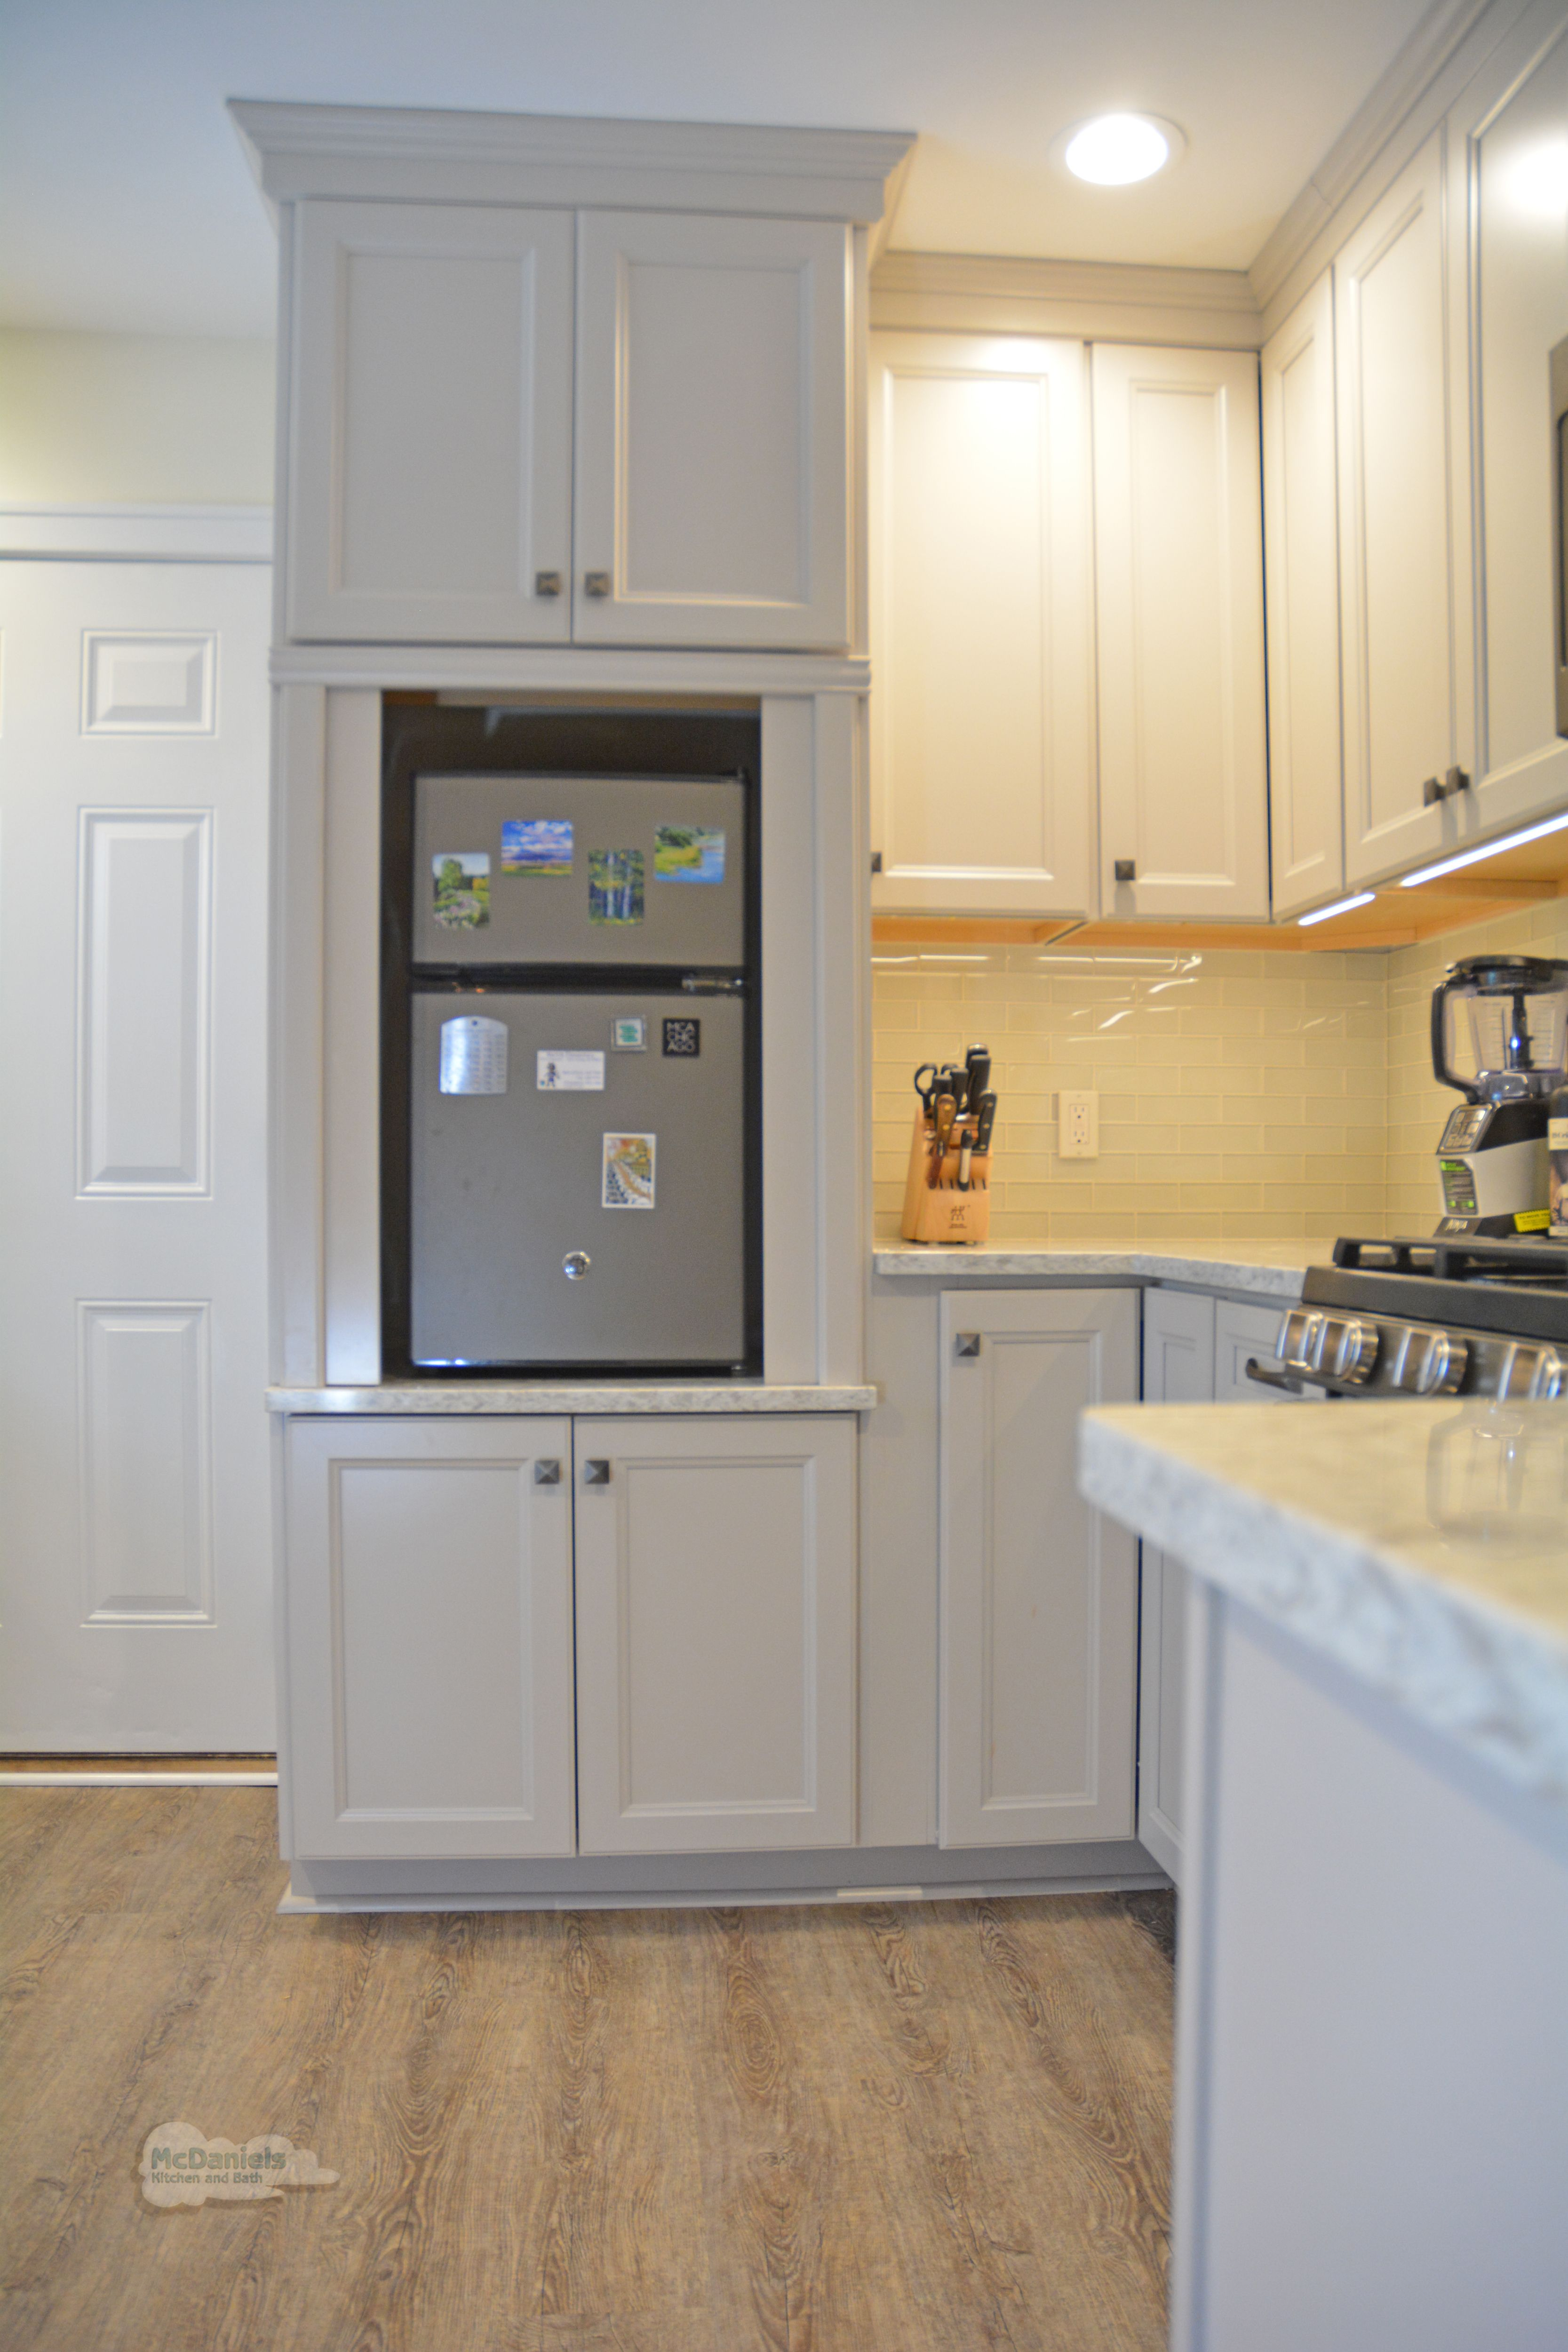 This Kitchen Design In East Lansing Proves That Your Kitchen Style Should Be Personalize Kitchen And Bath Remodeling Kitchen And Bath Laminate Kitchen Cabinets